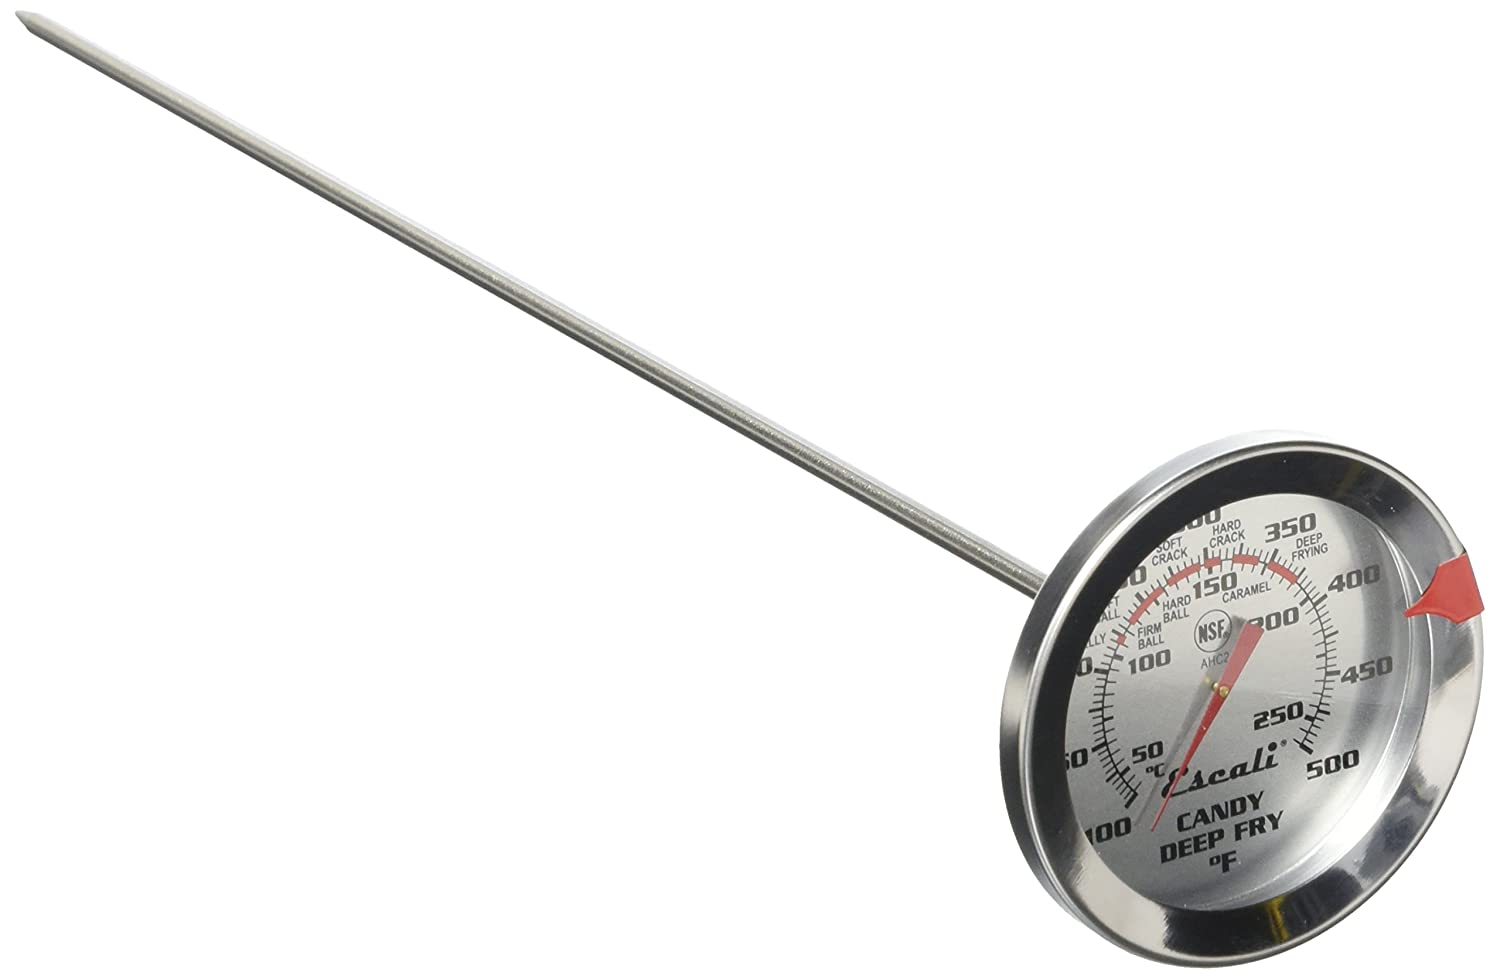 Escali AHC2 NSF Listed Candy/Deep Fry Thermometer with 12 Probe, Silver